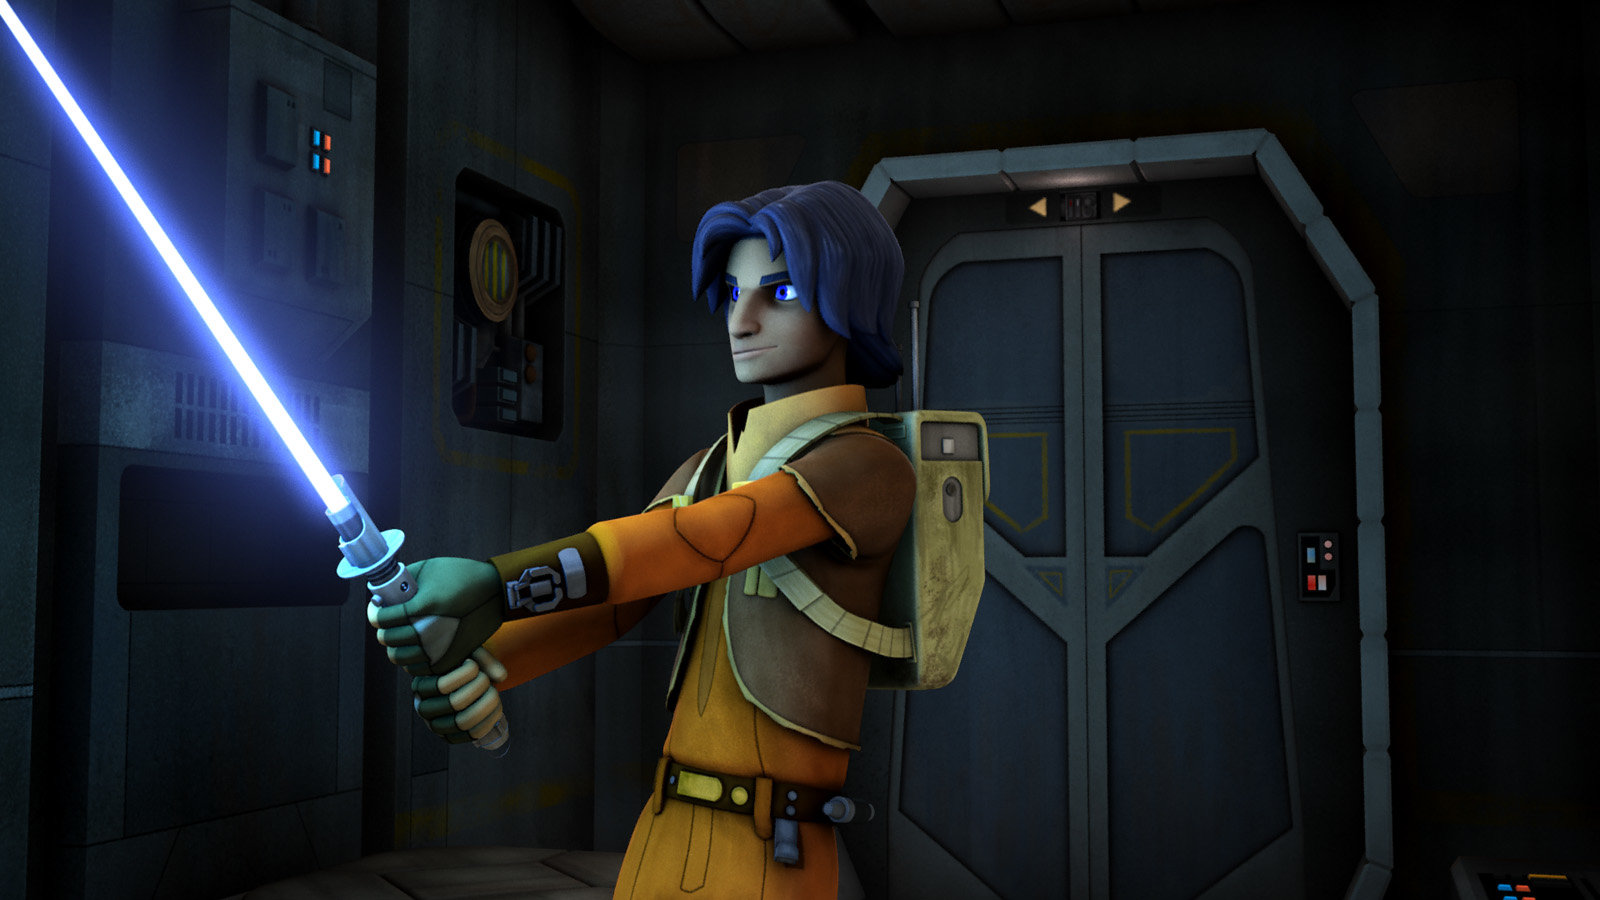 Awesome Star Wars Rebels Free Wallpaper Id 456134 For Hd 1600x900 Pc